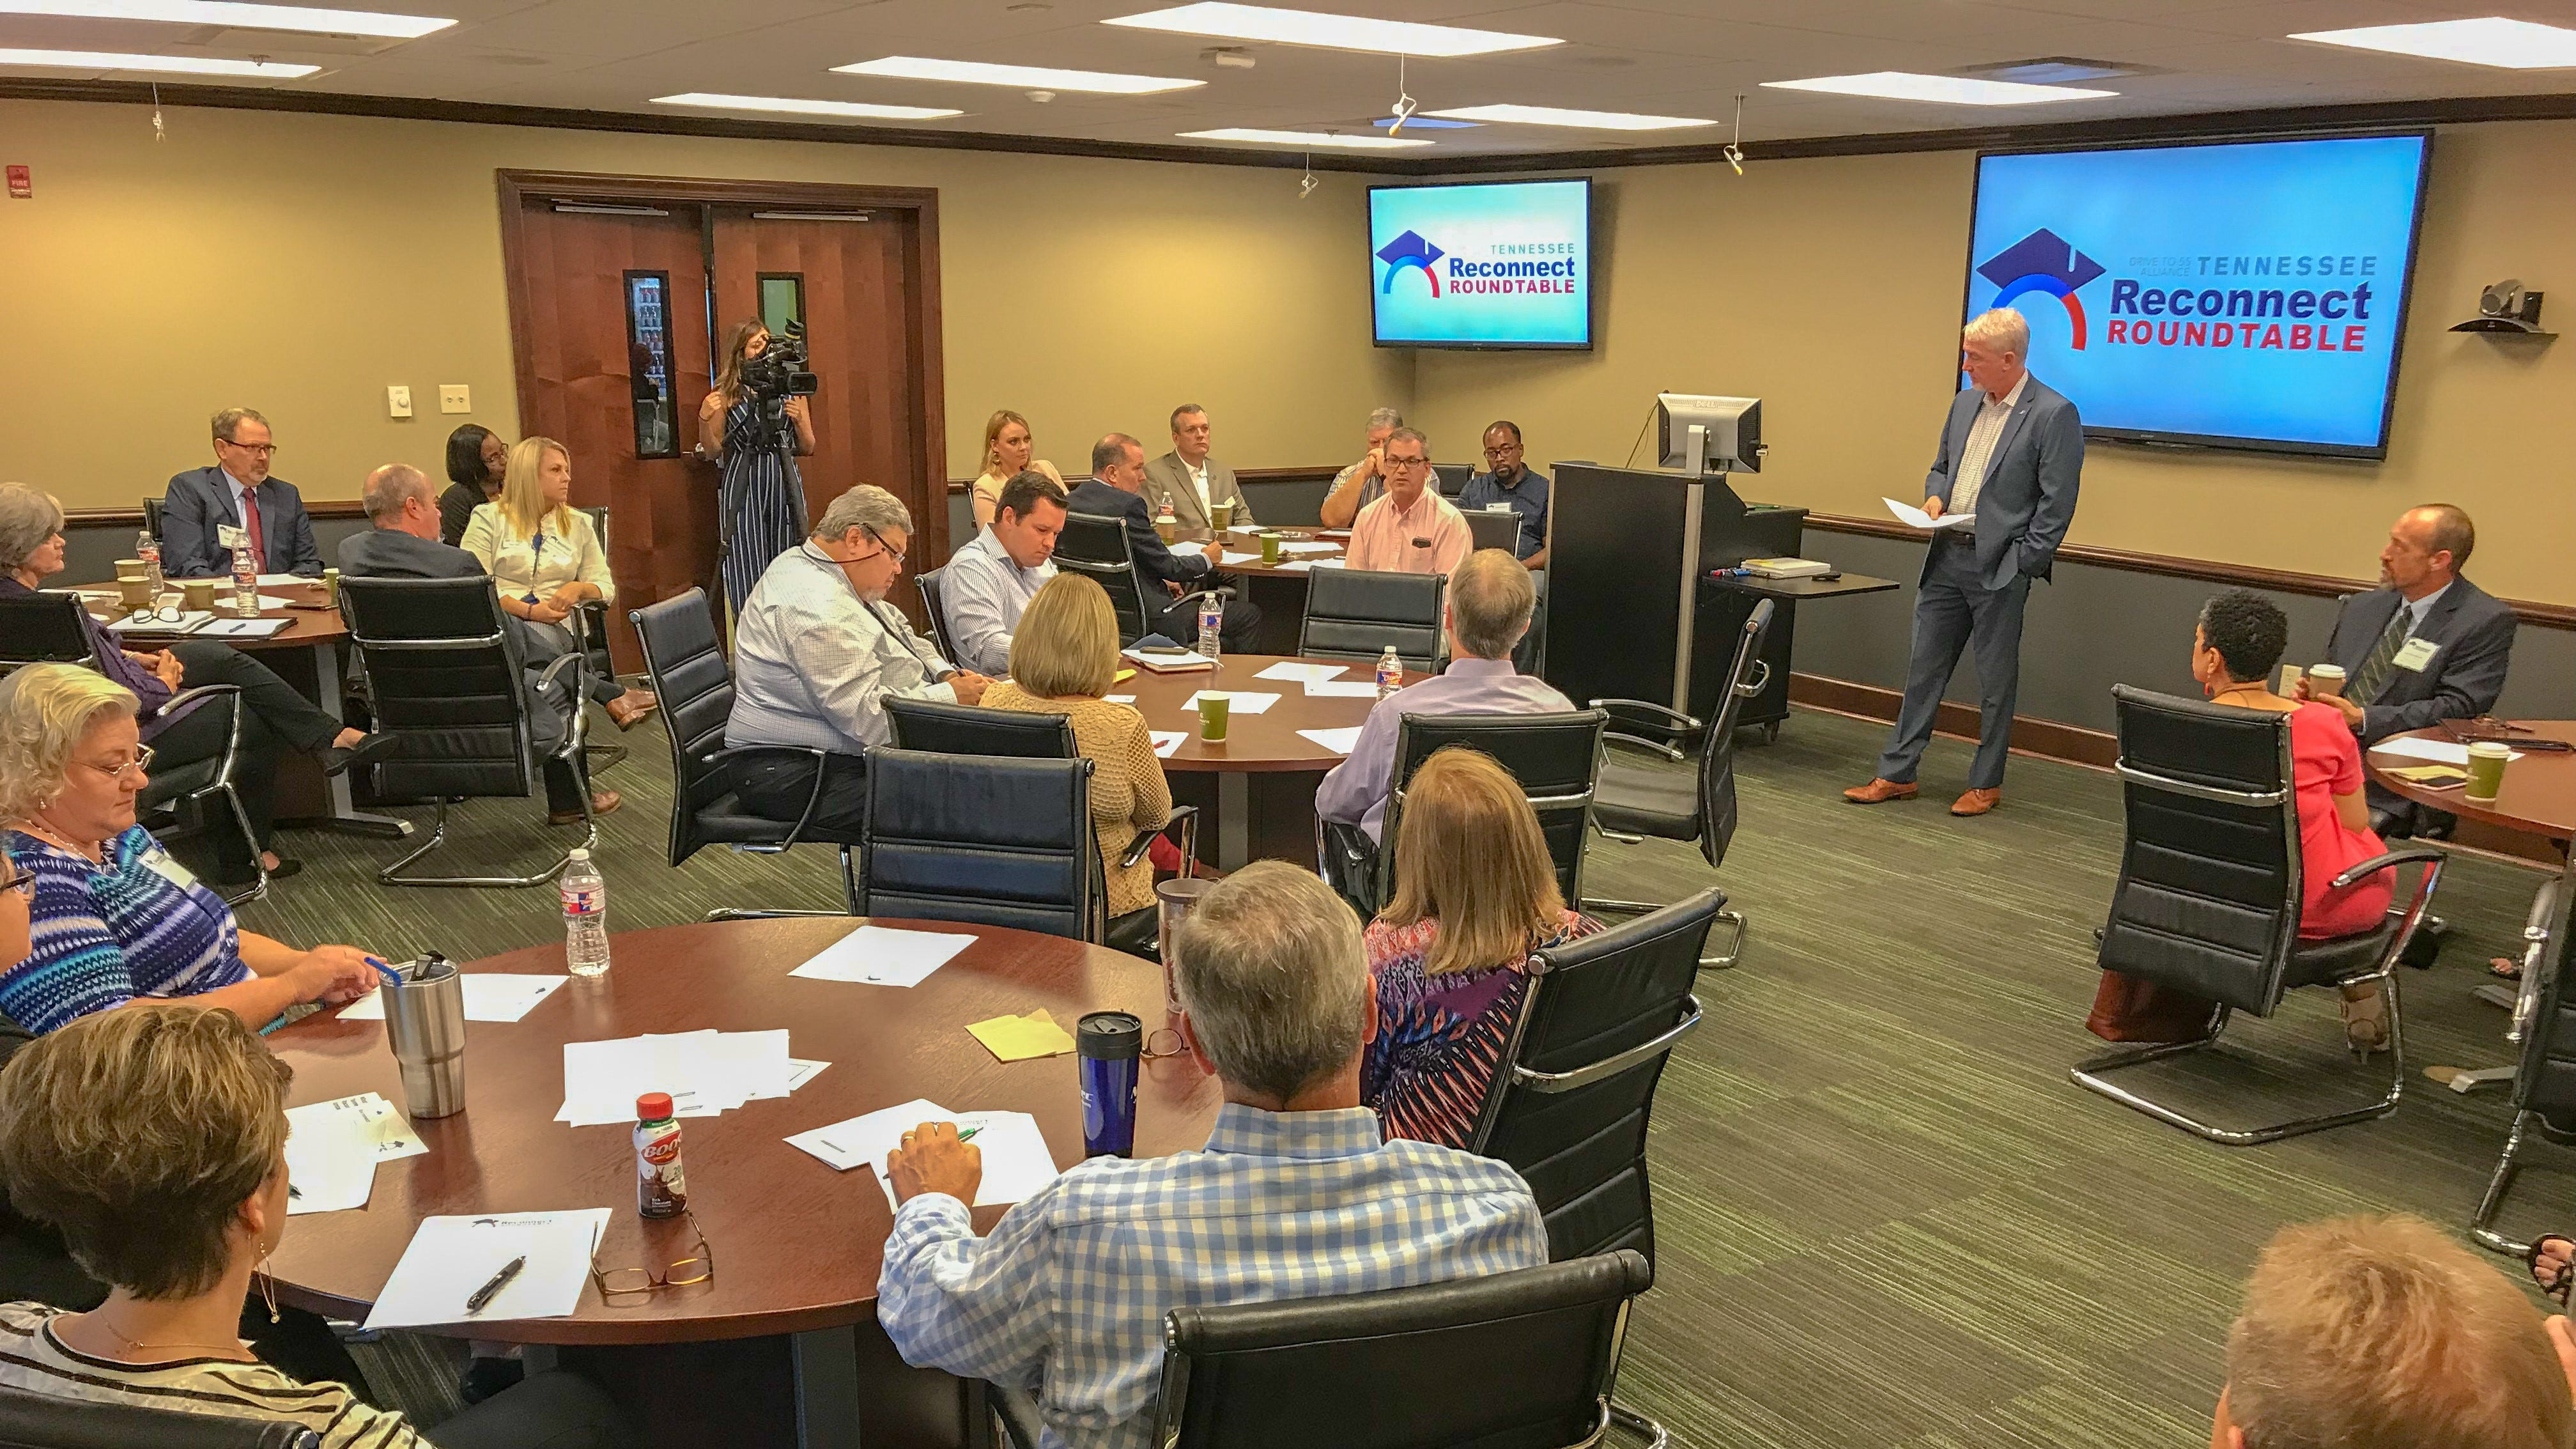 Drive to 55 Alliance hosts first Tennessee Reconnect Roundtable in Jackson